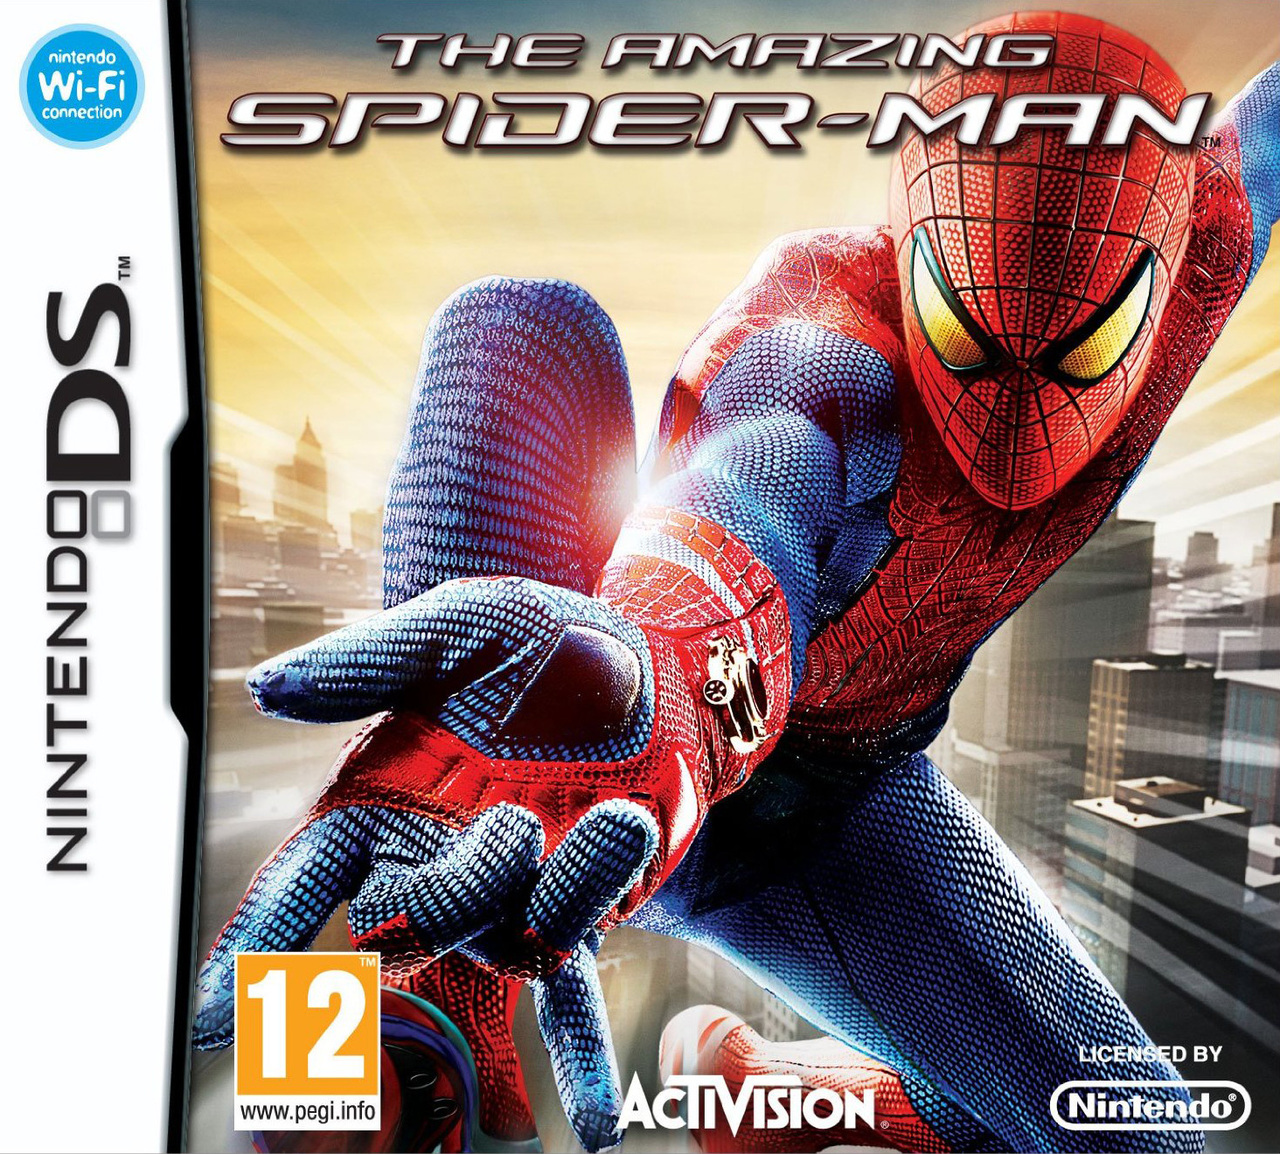 THE AMAZING SPIDER-MAN [NDS]